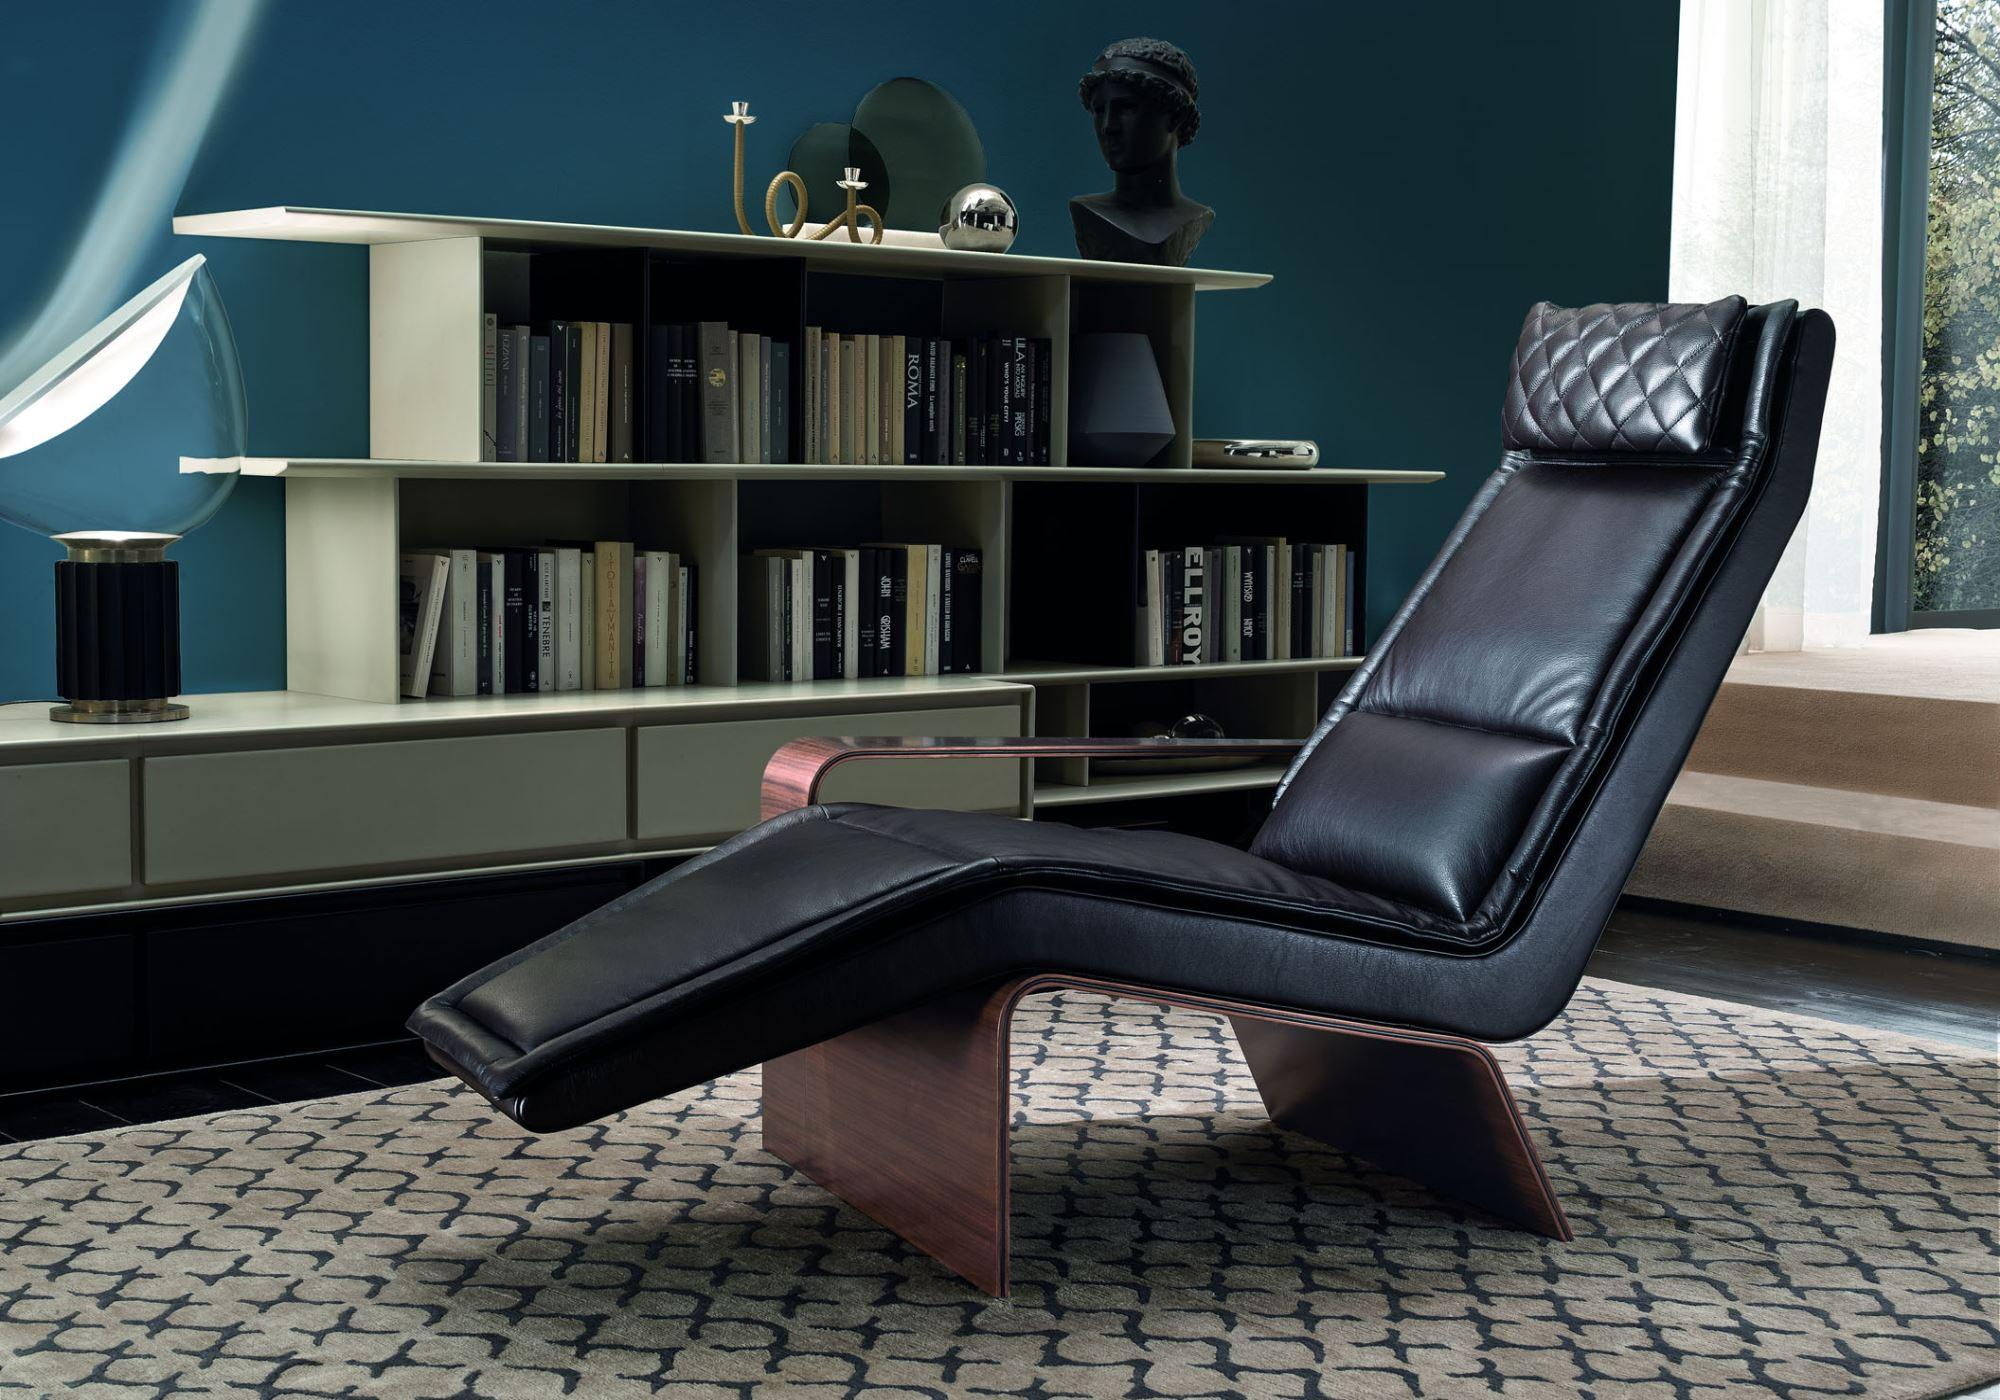 Ala is a chaise lounge designed by Matteo Nunziati . Aims to find the balance between a linear and at the same time contemporary and sophisticated design.